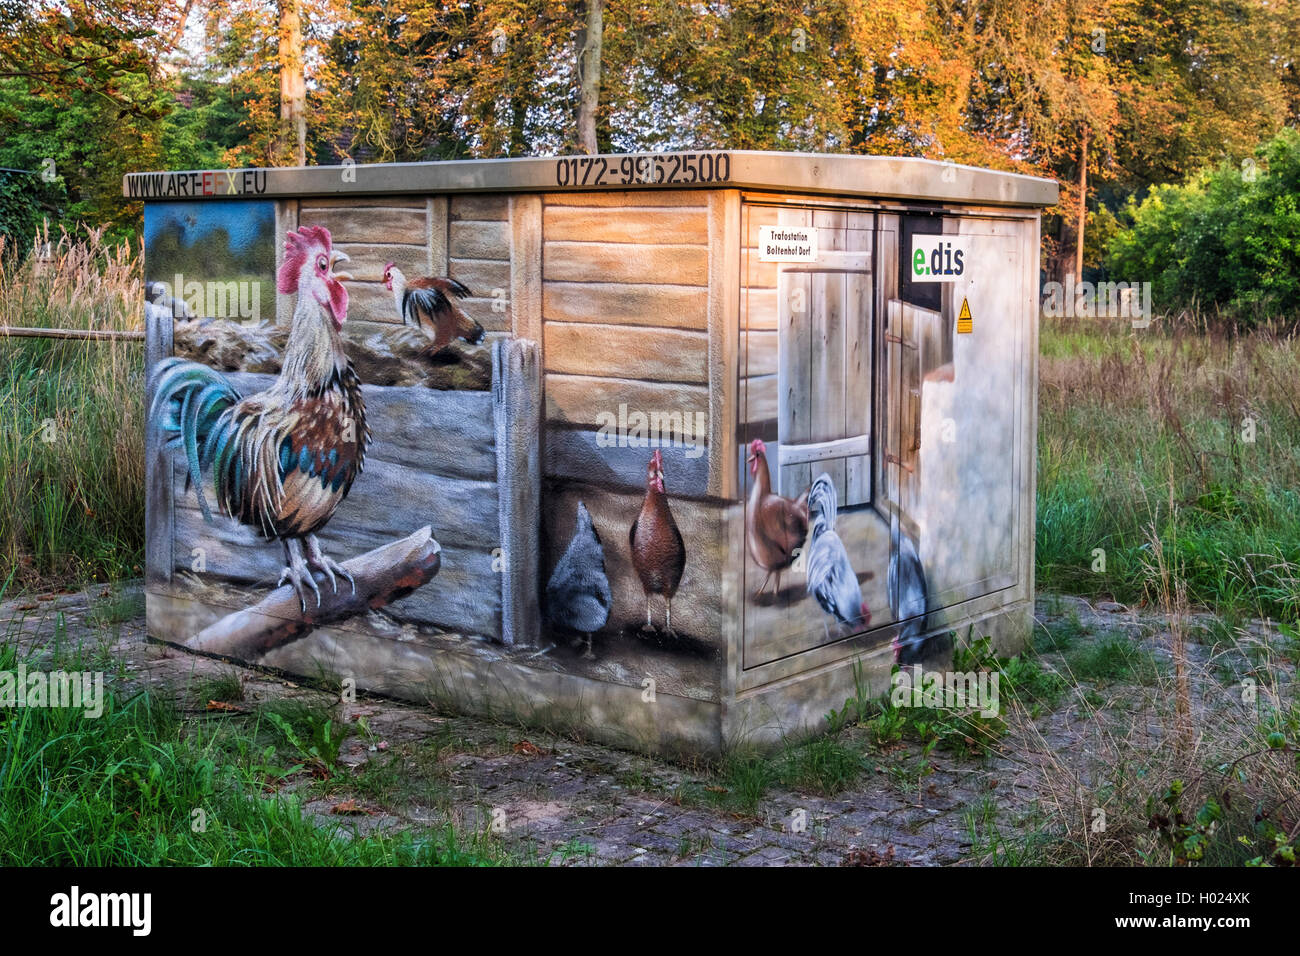 Utility box decorated with artwork of farm animals, rooster and hens in farm field - Stock Image